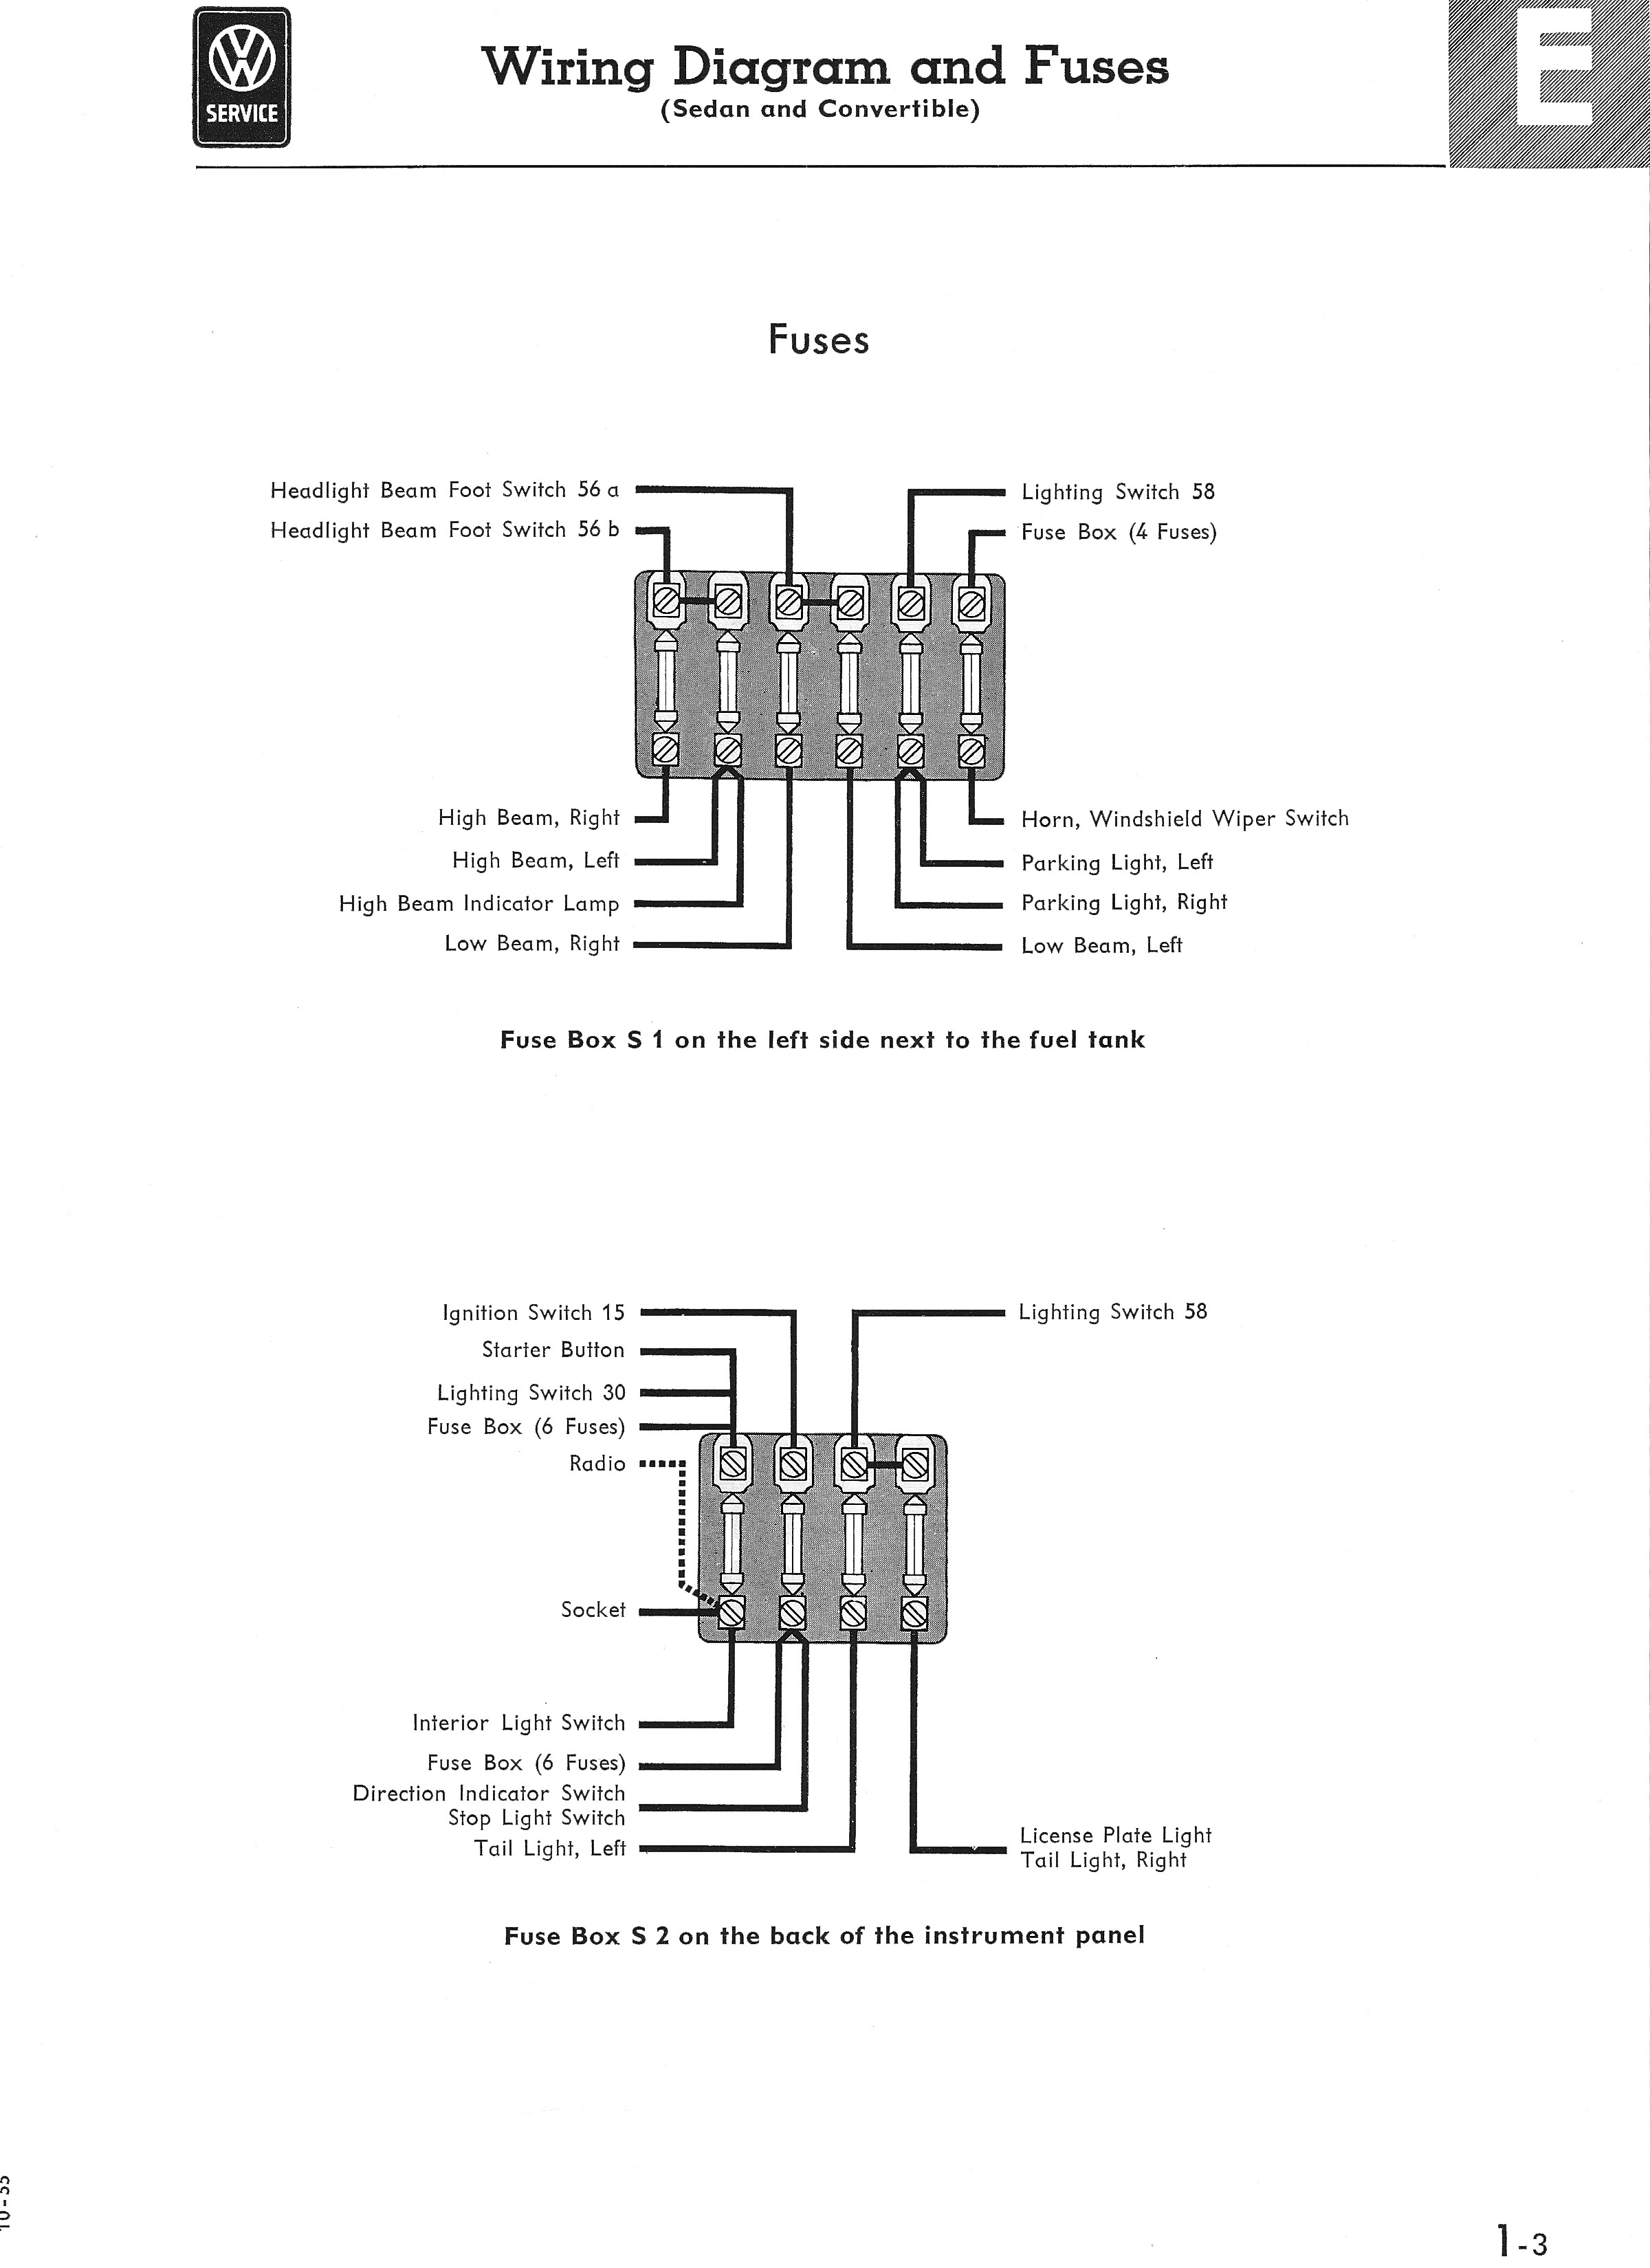 Type 1 Wiring Diagrams 1969 Mustang Radio Diagram